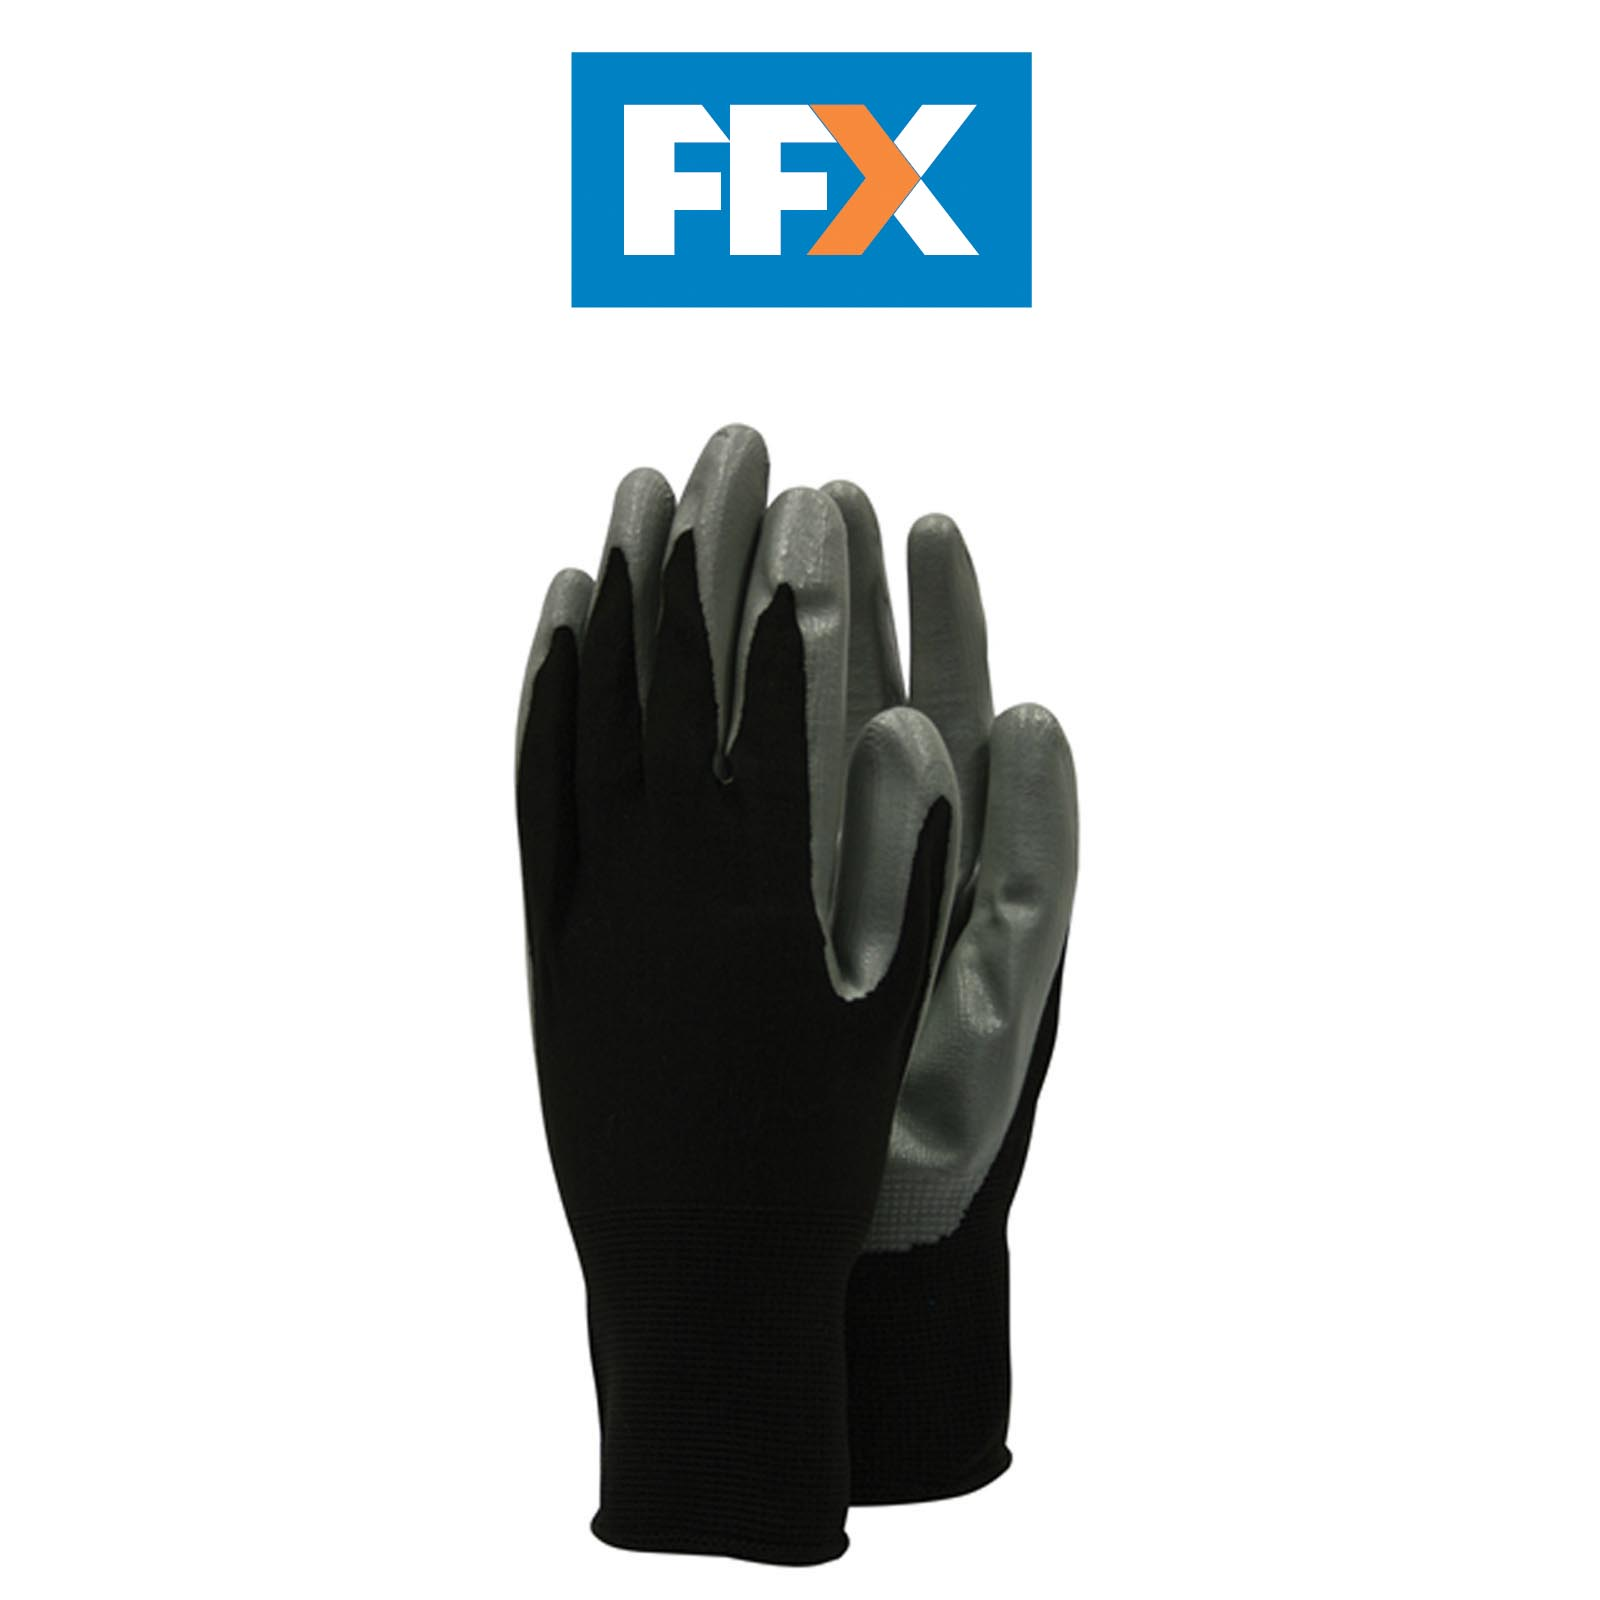 Male gloves ebay - Image Is Loading Town And Country Tgl434 Weed Master Mens Gloves